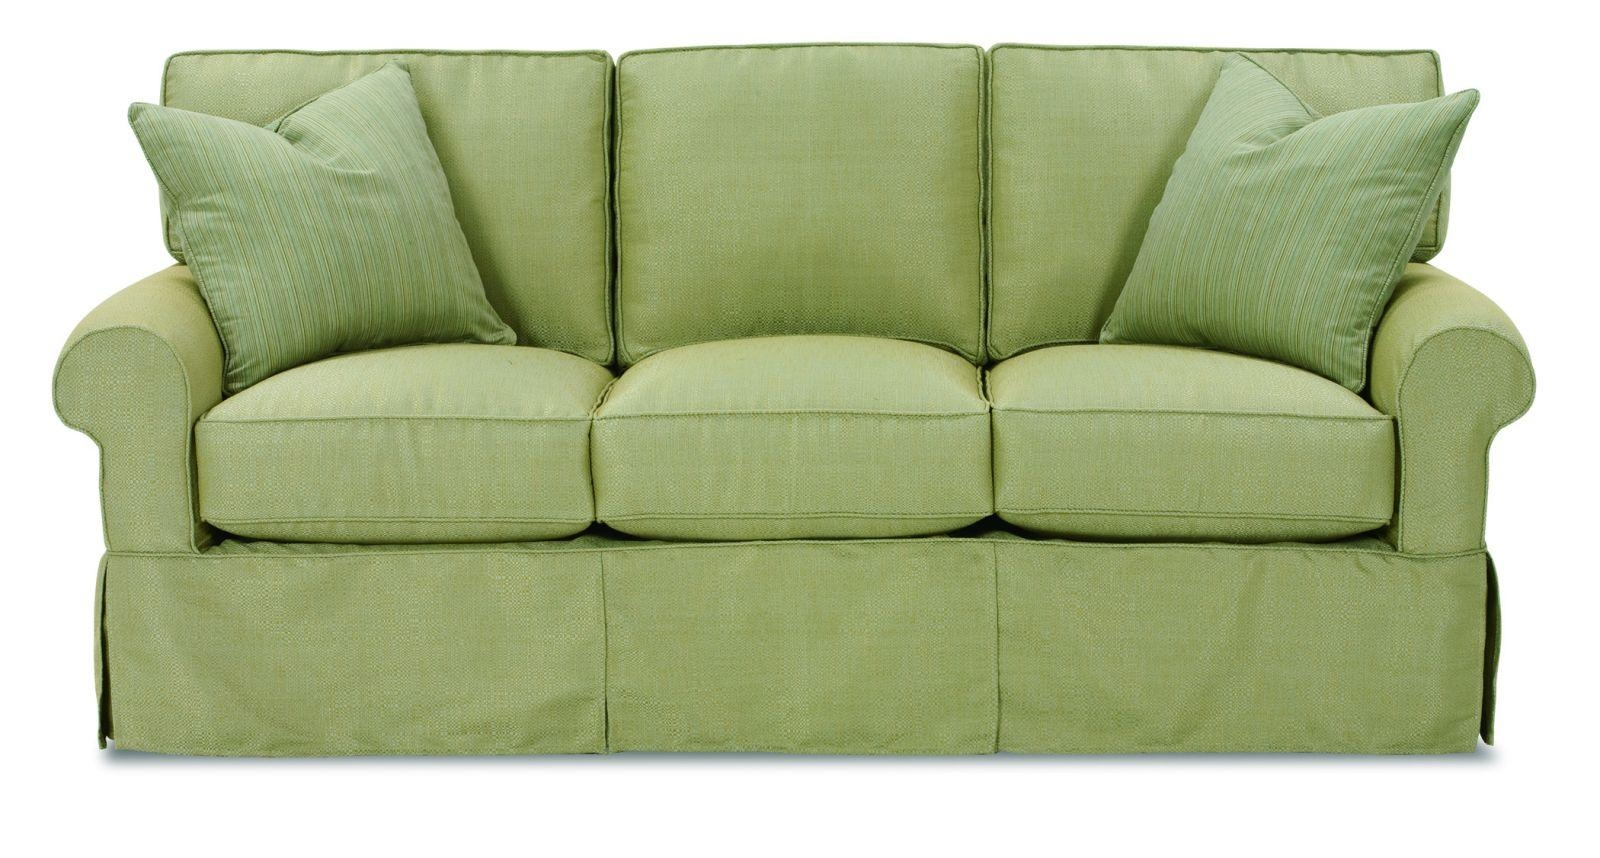 Furniture: Slipcovers For Couch | Slipcovers For Couches And Pertaining To Slip Covers For Love Seats (Image 8 of 20)